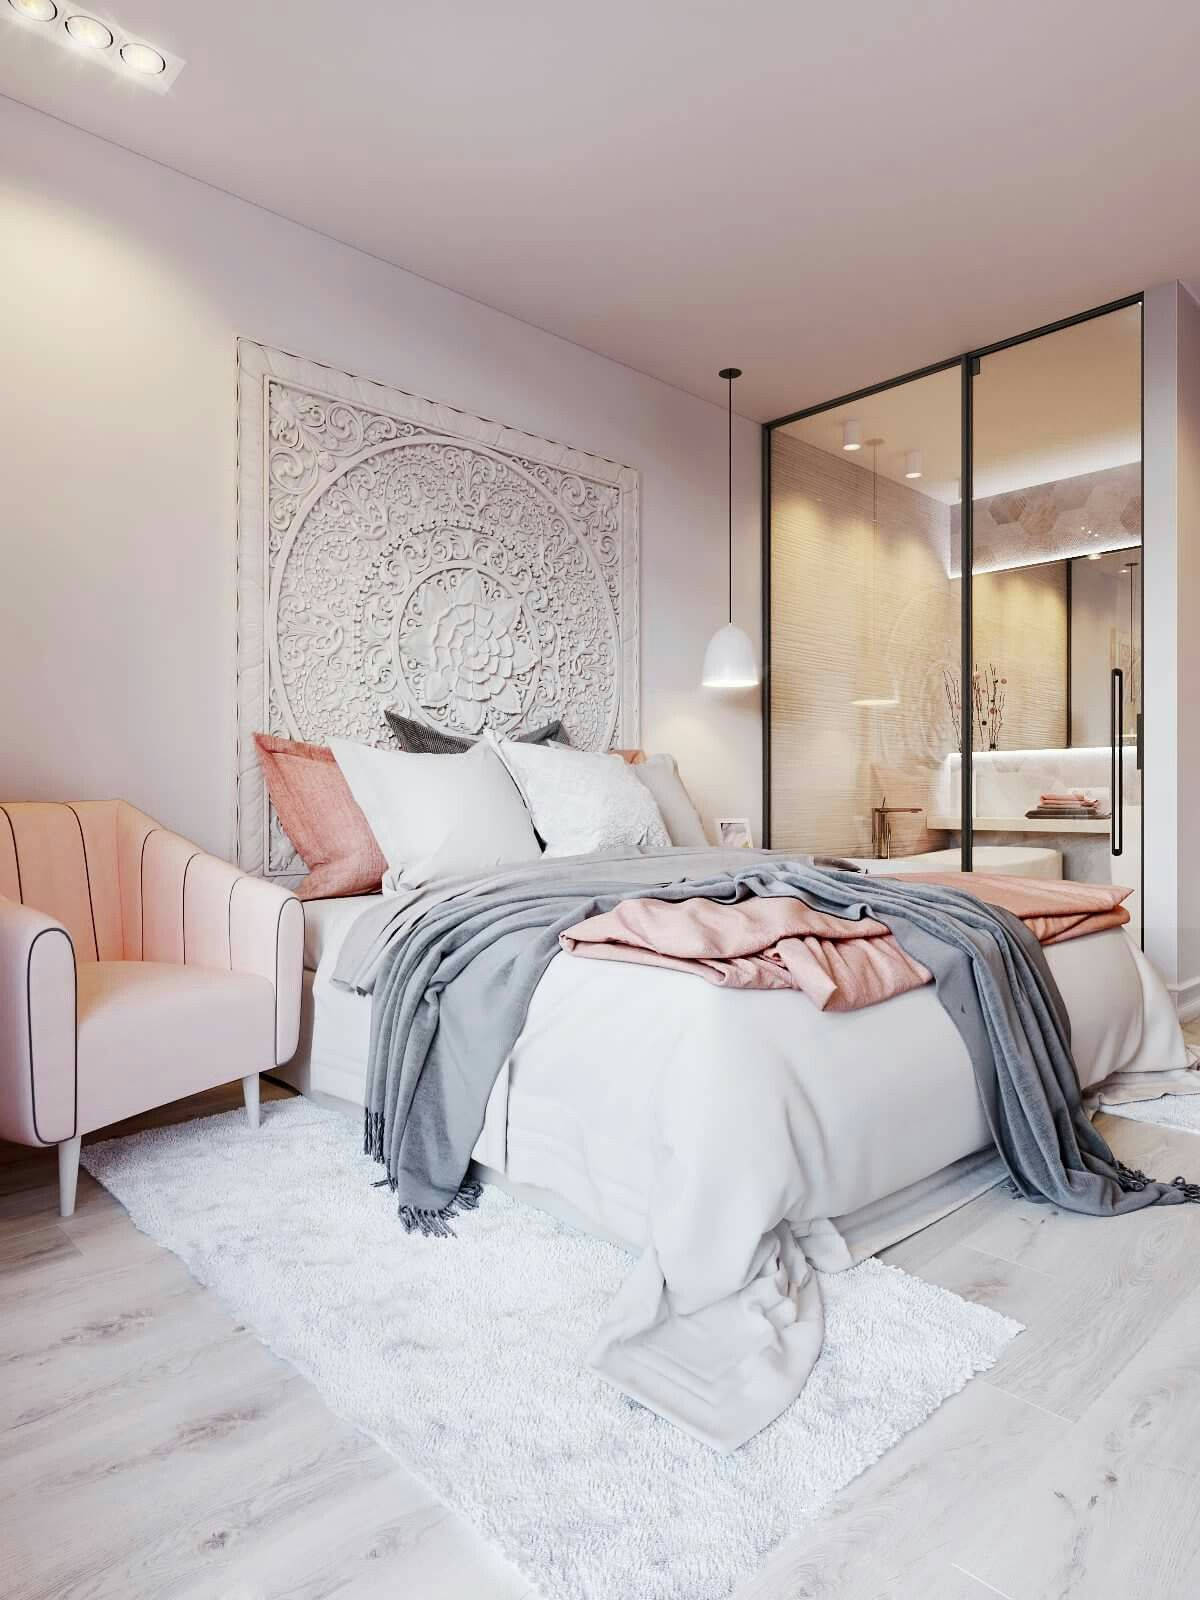 Chambre Grise Et Blanche Pin By Ariana Sorci On Bedroom Pinterest Maison Chambres